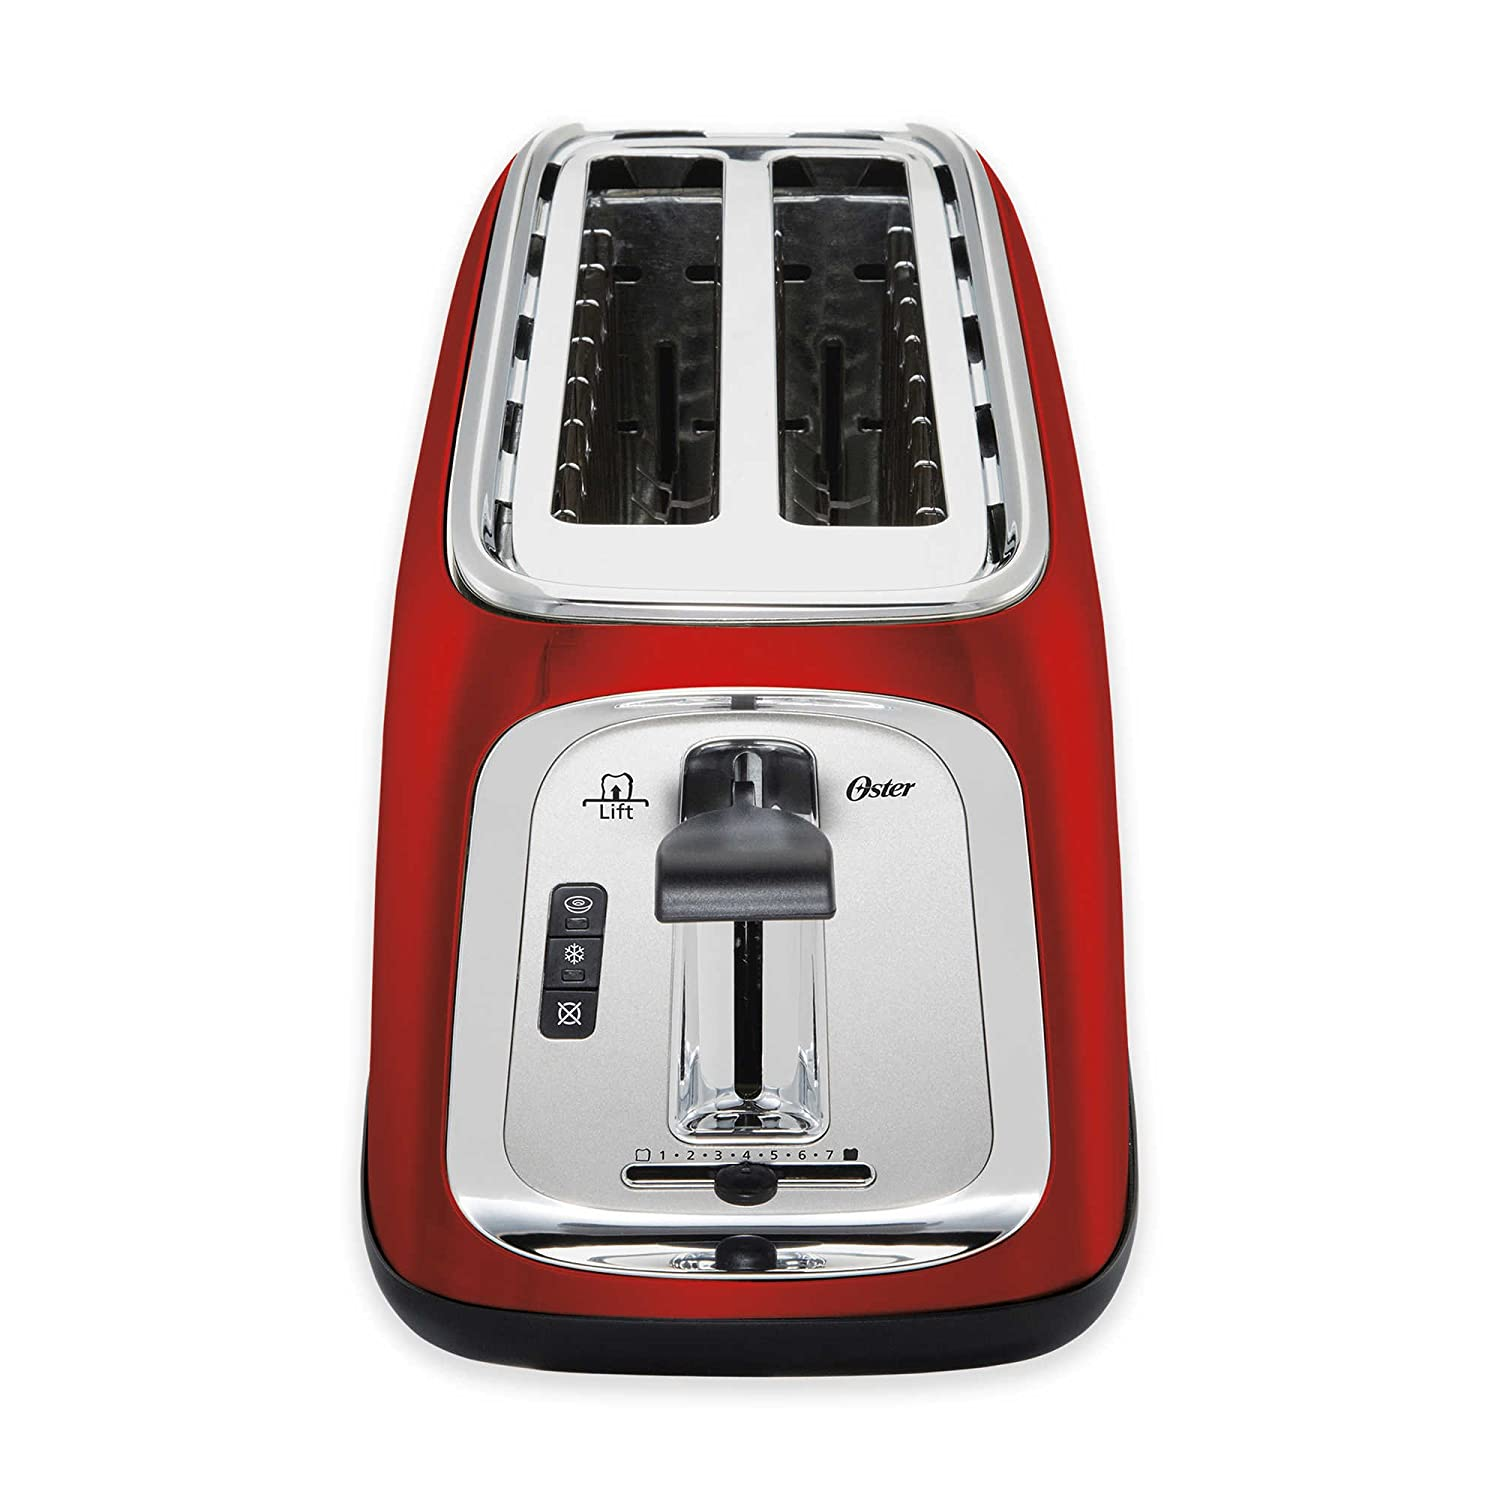 Oster 4-Slice Long-Slot Toaster in Red